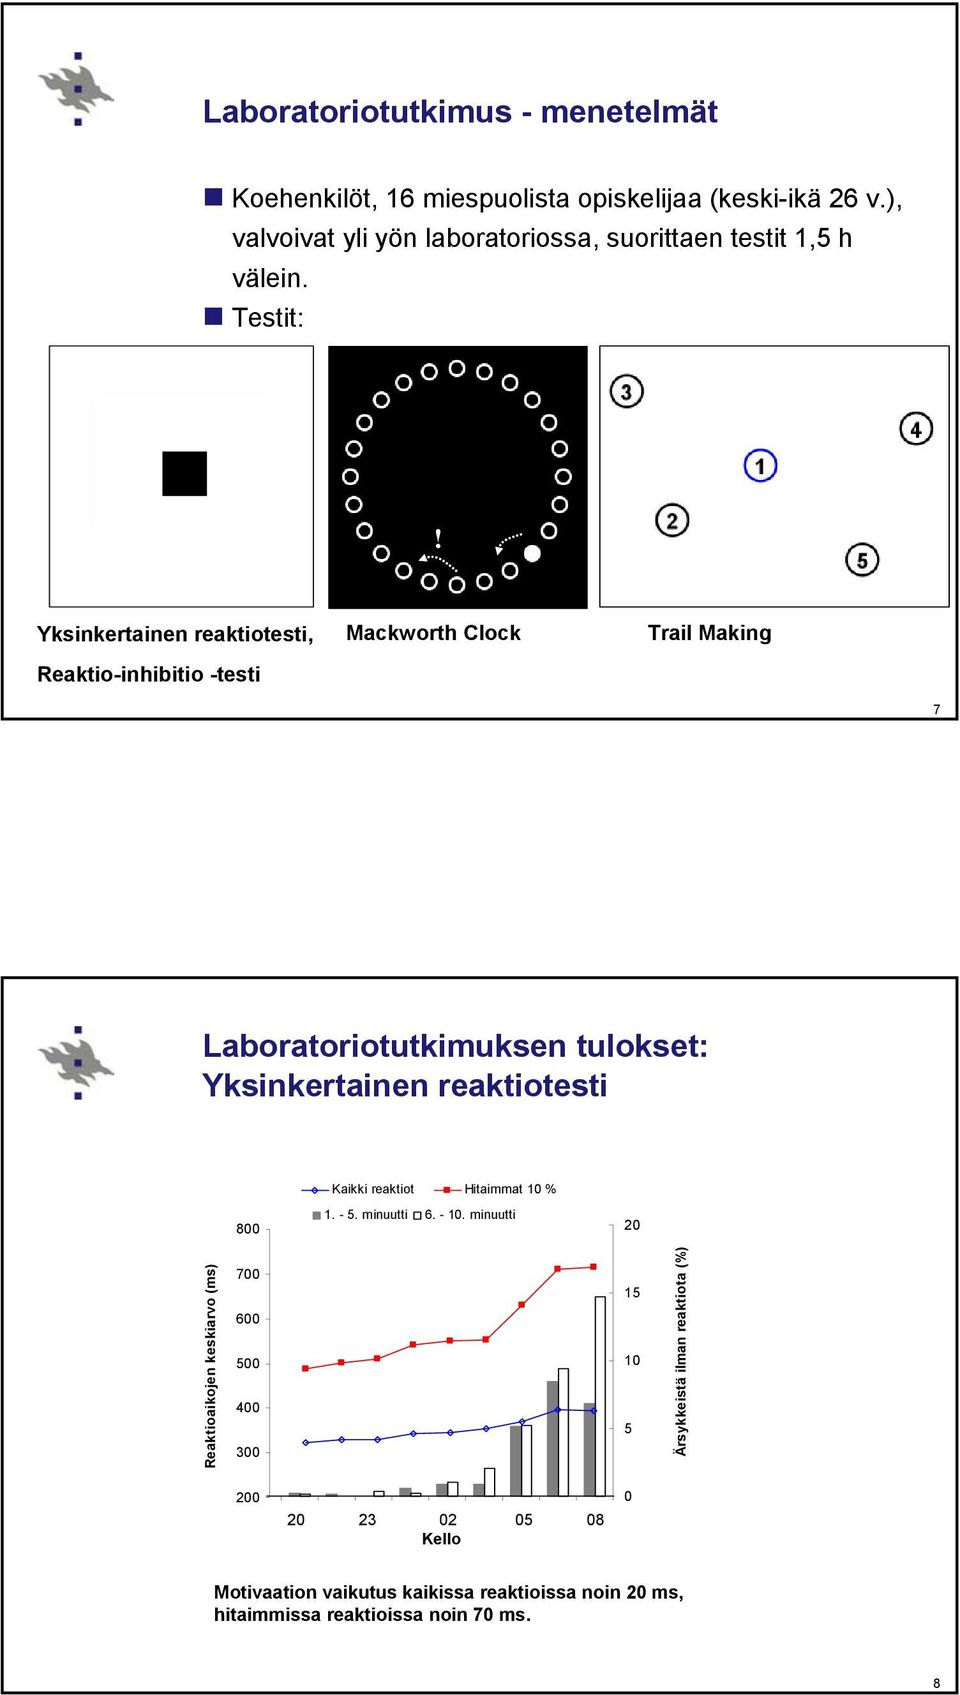 Yksinkertainen reaktiotesti, Reaktio-inhibitio -testi Mackworth Clock Trail Making 7 Laboratoriotutkimuksen tulokset: Yksinkertainen